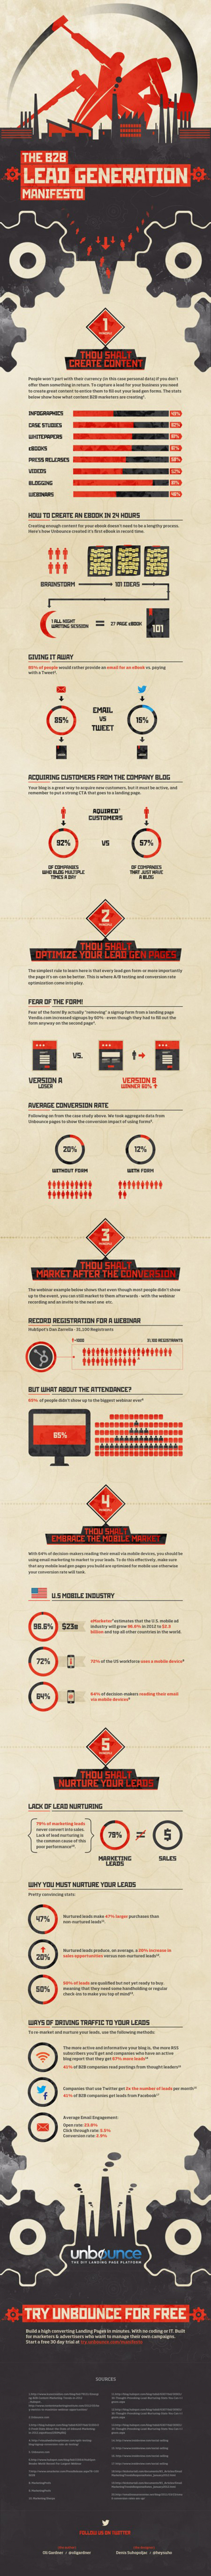 5 Principles Of B2B Lead Generation [Infographic] | Marketing Revolution | Scoop.it